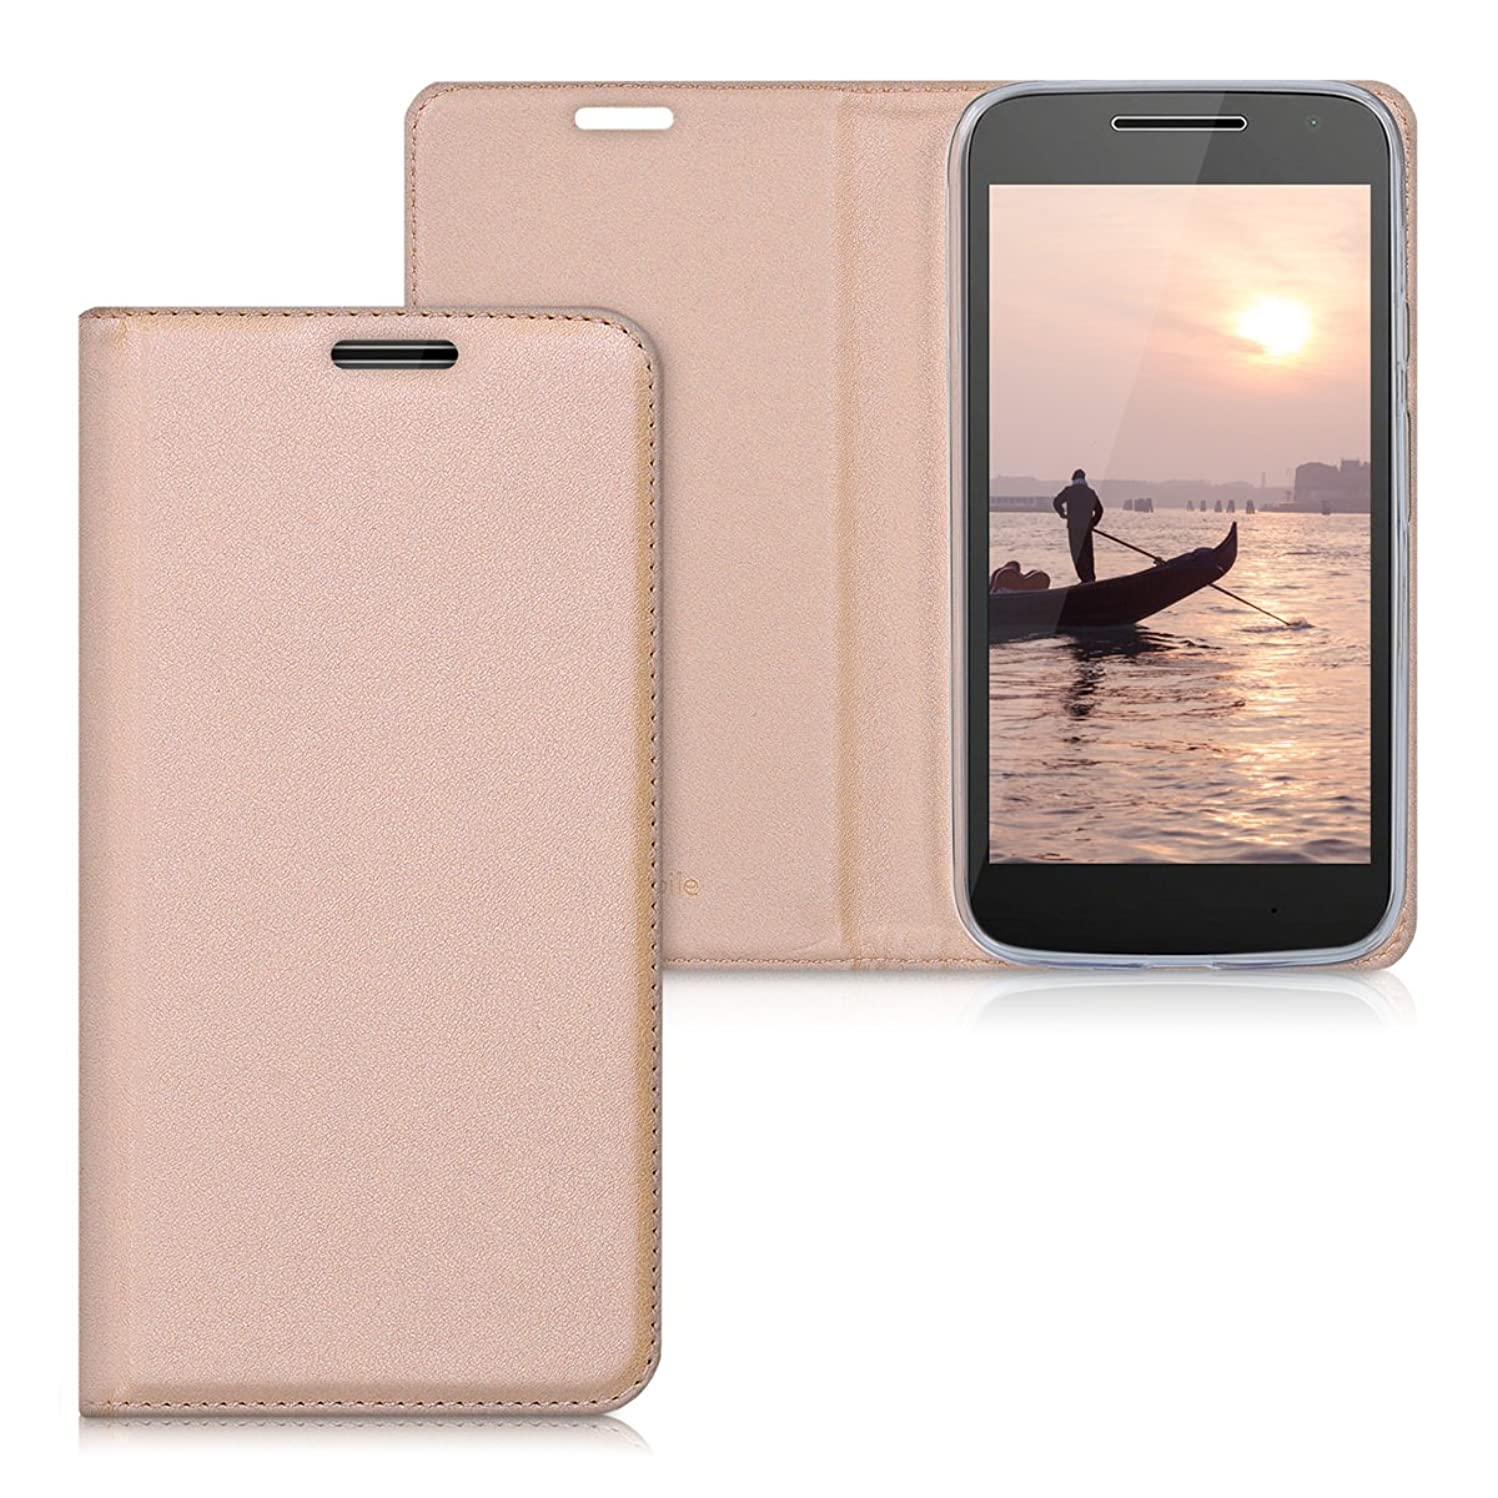 kwmobile Flip Case for Motorola Moto G4 Play - Smooth PU Leather Slim Folio Cover Protective Phone Holder - Rose Gold